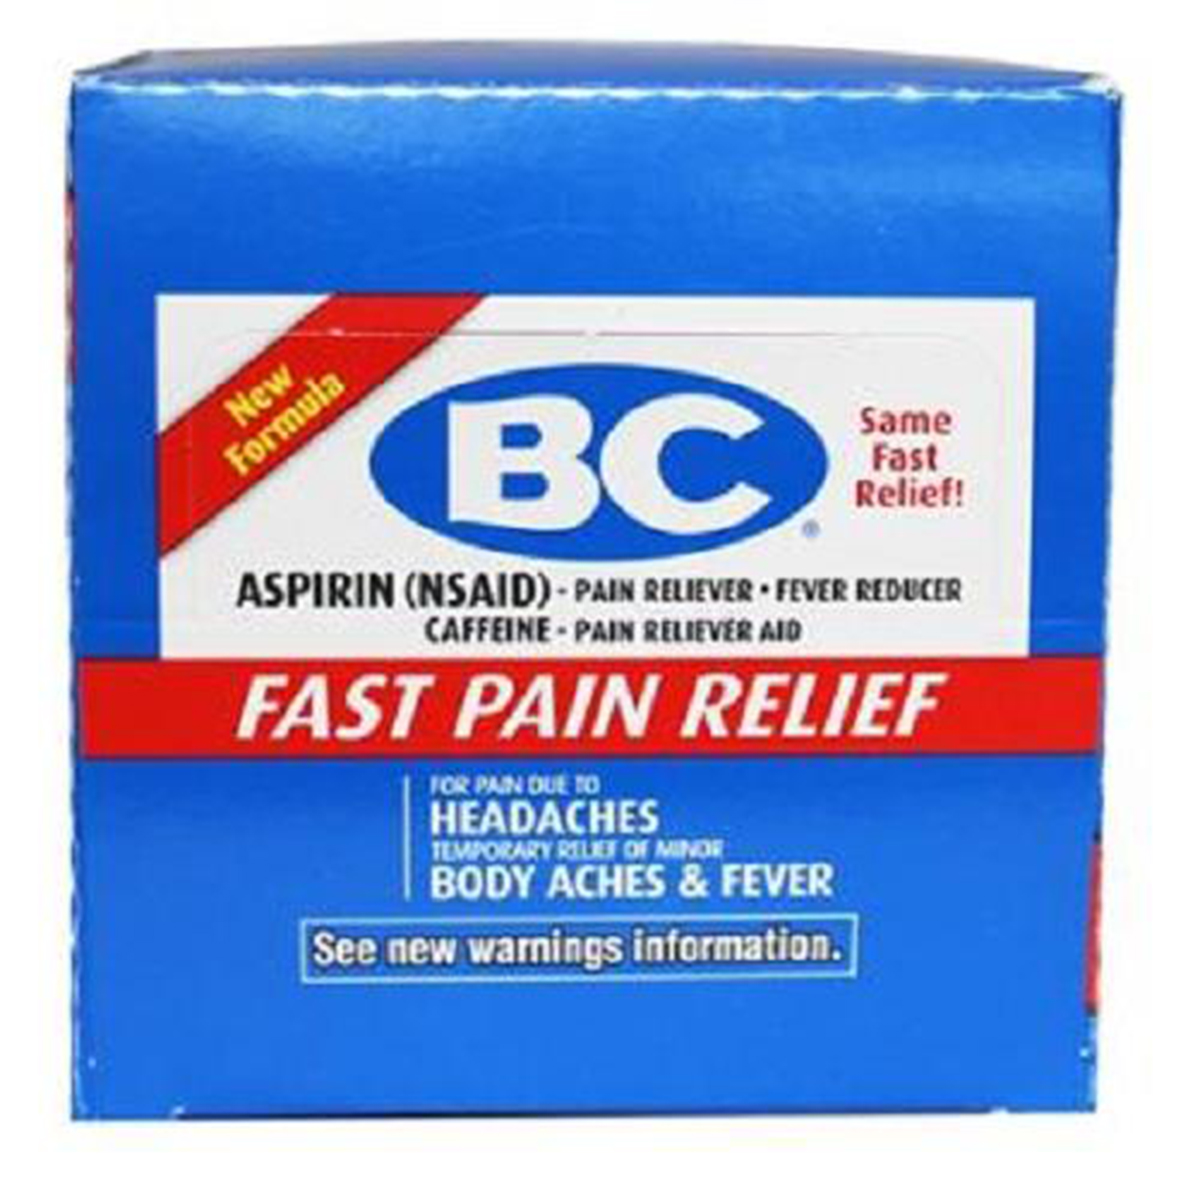 Product Of Bc, 2 Powders, Count 36 (2Pk) - Headache/Pain Relief / Grab Varieties & Flavors